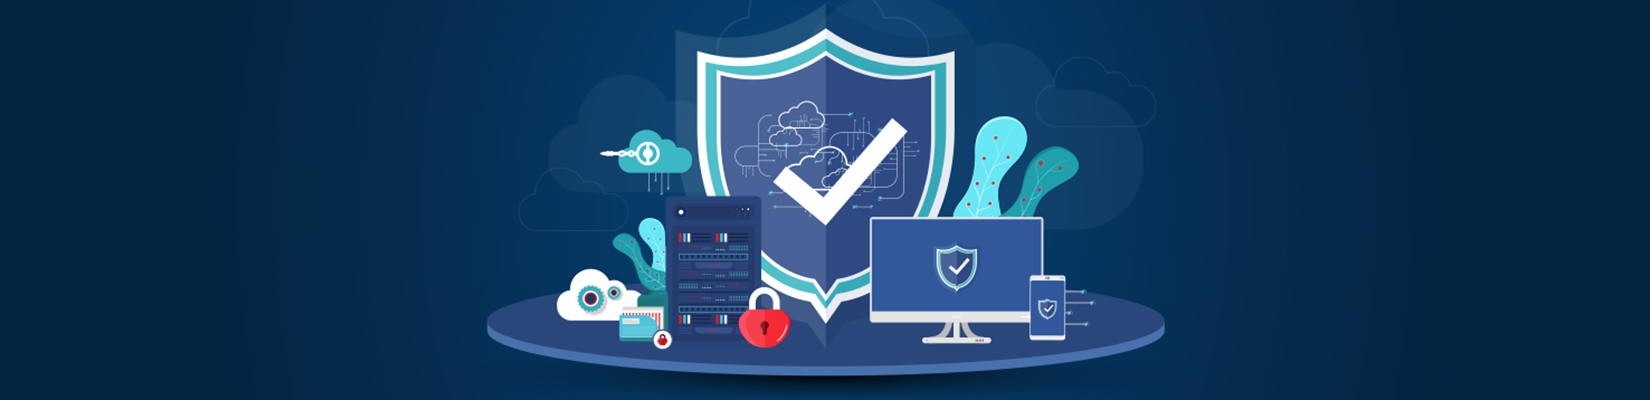 Endpoint Detection & Response is Not Enough for Your Business